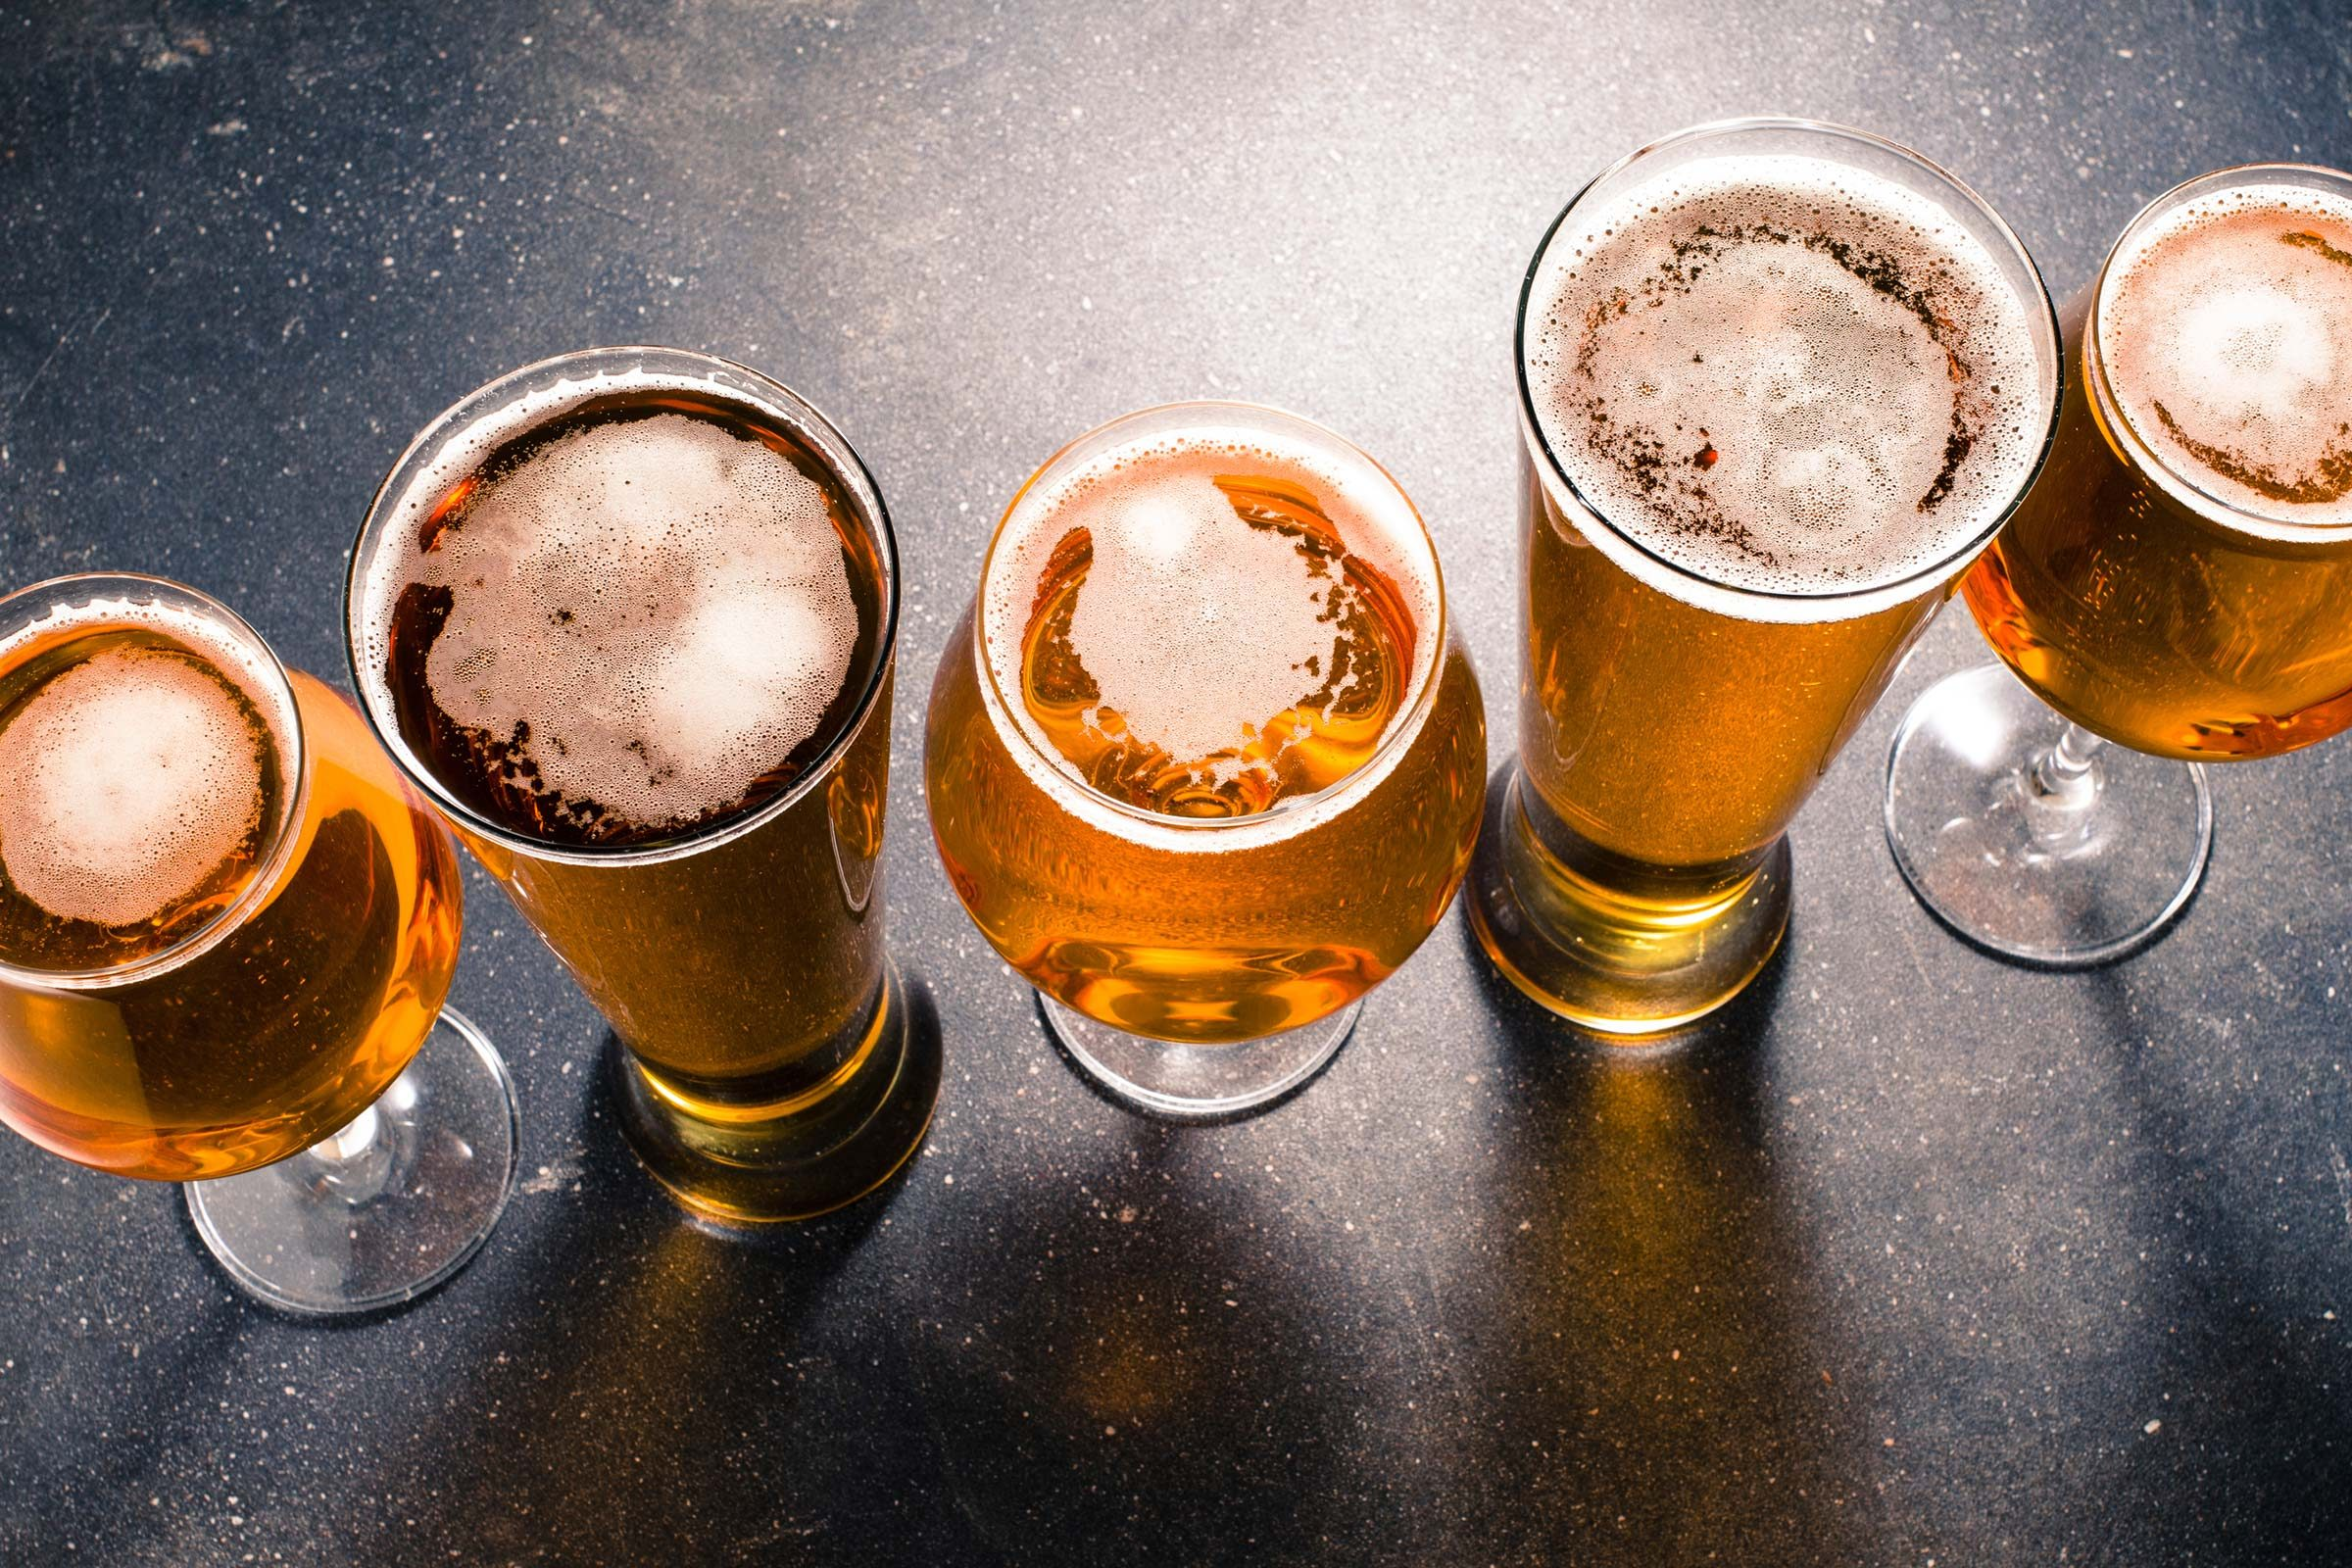 Craft Beer Drinkers Pay Attention To The Little Details